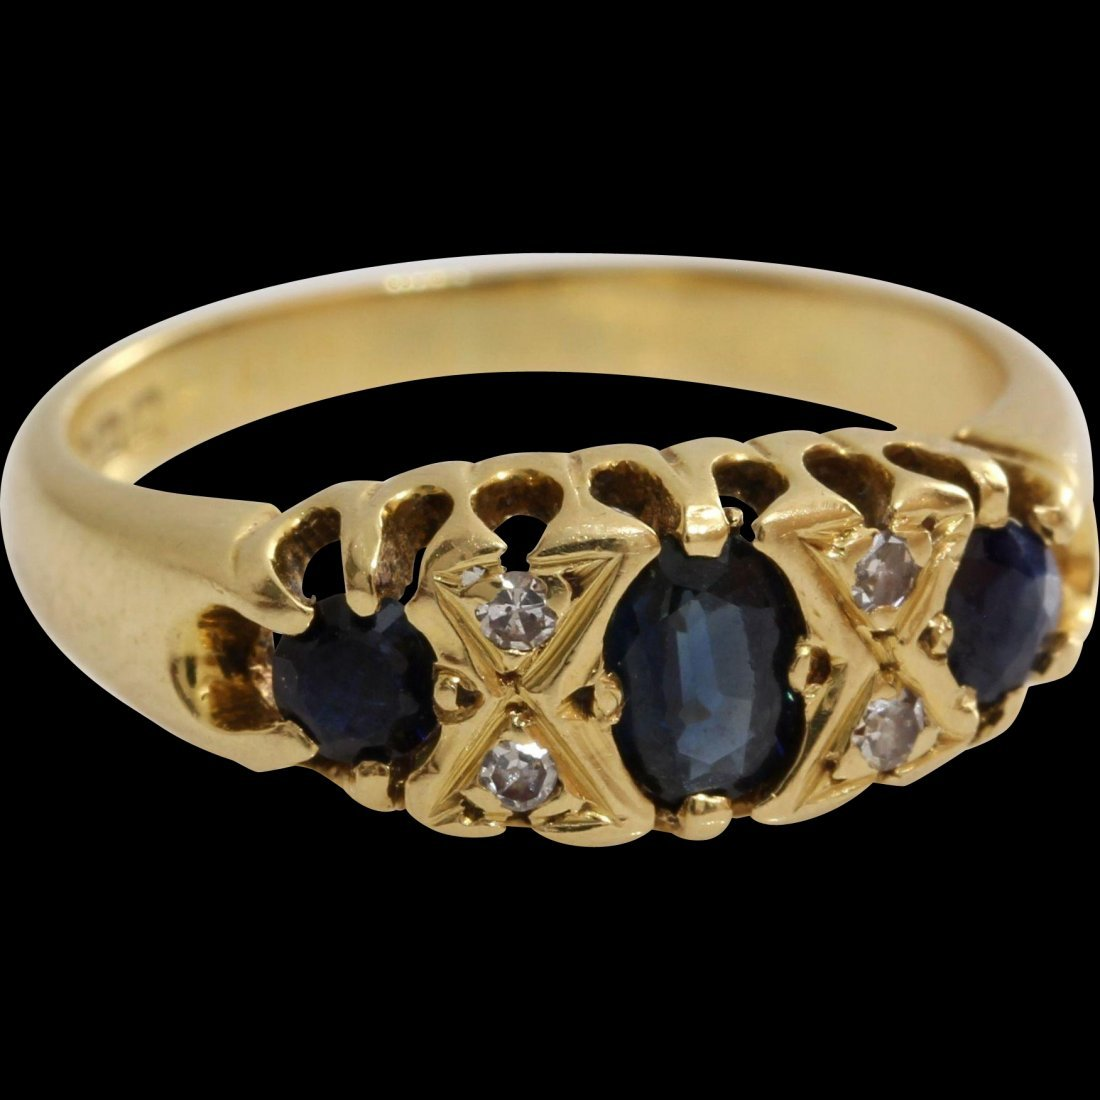 Edwardian Sapphire Diamond Ring | 18K Yellow Gold |